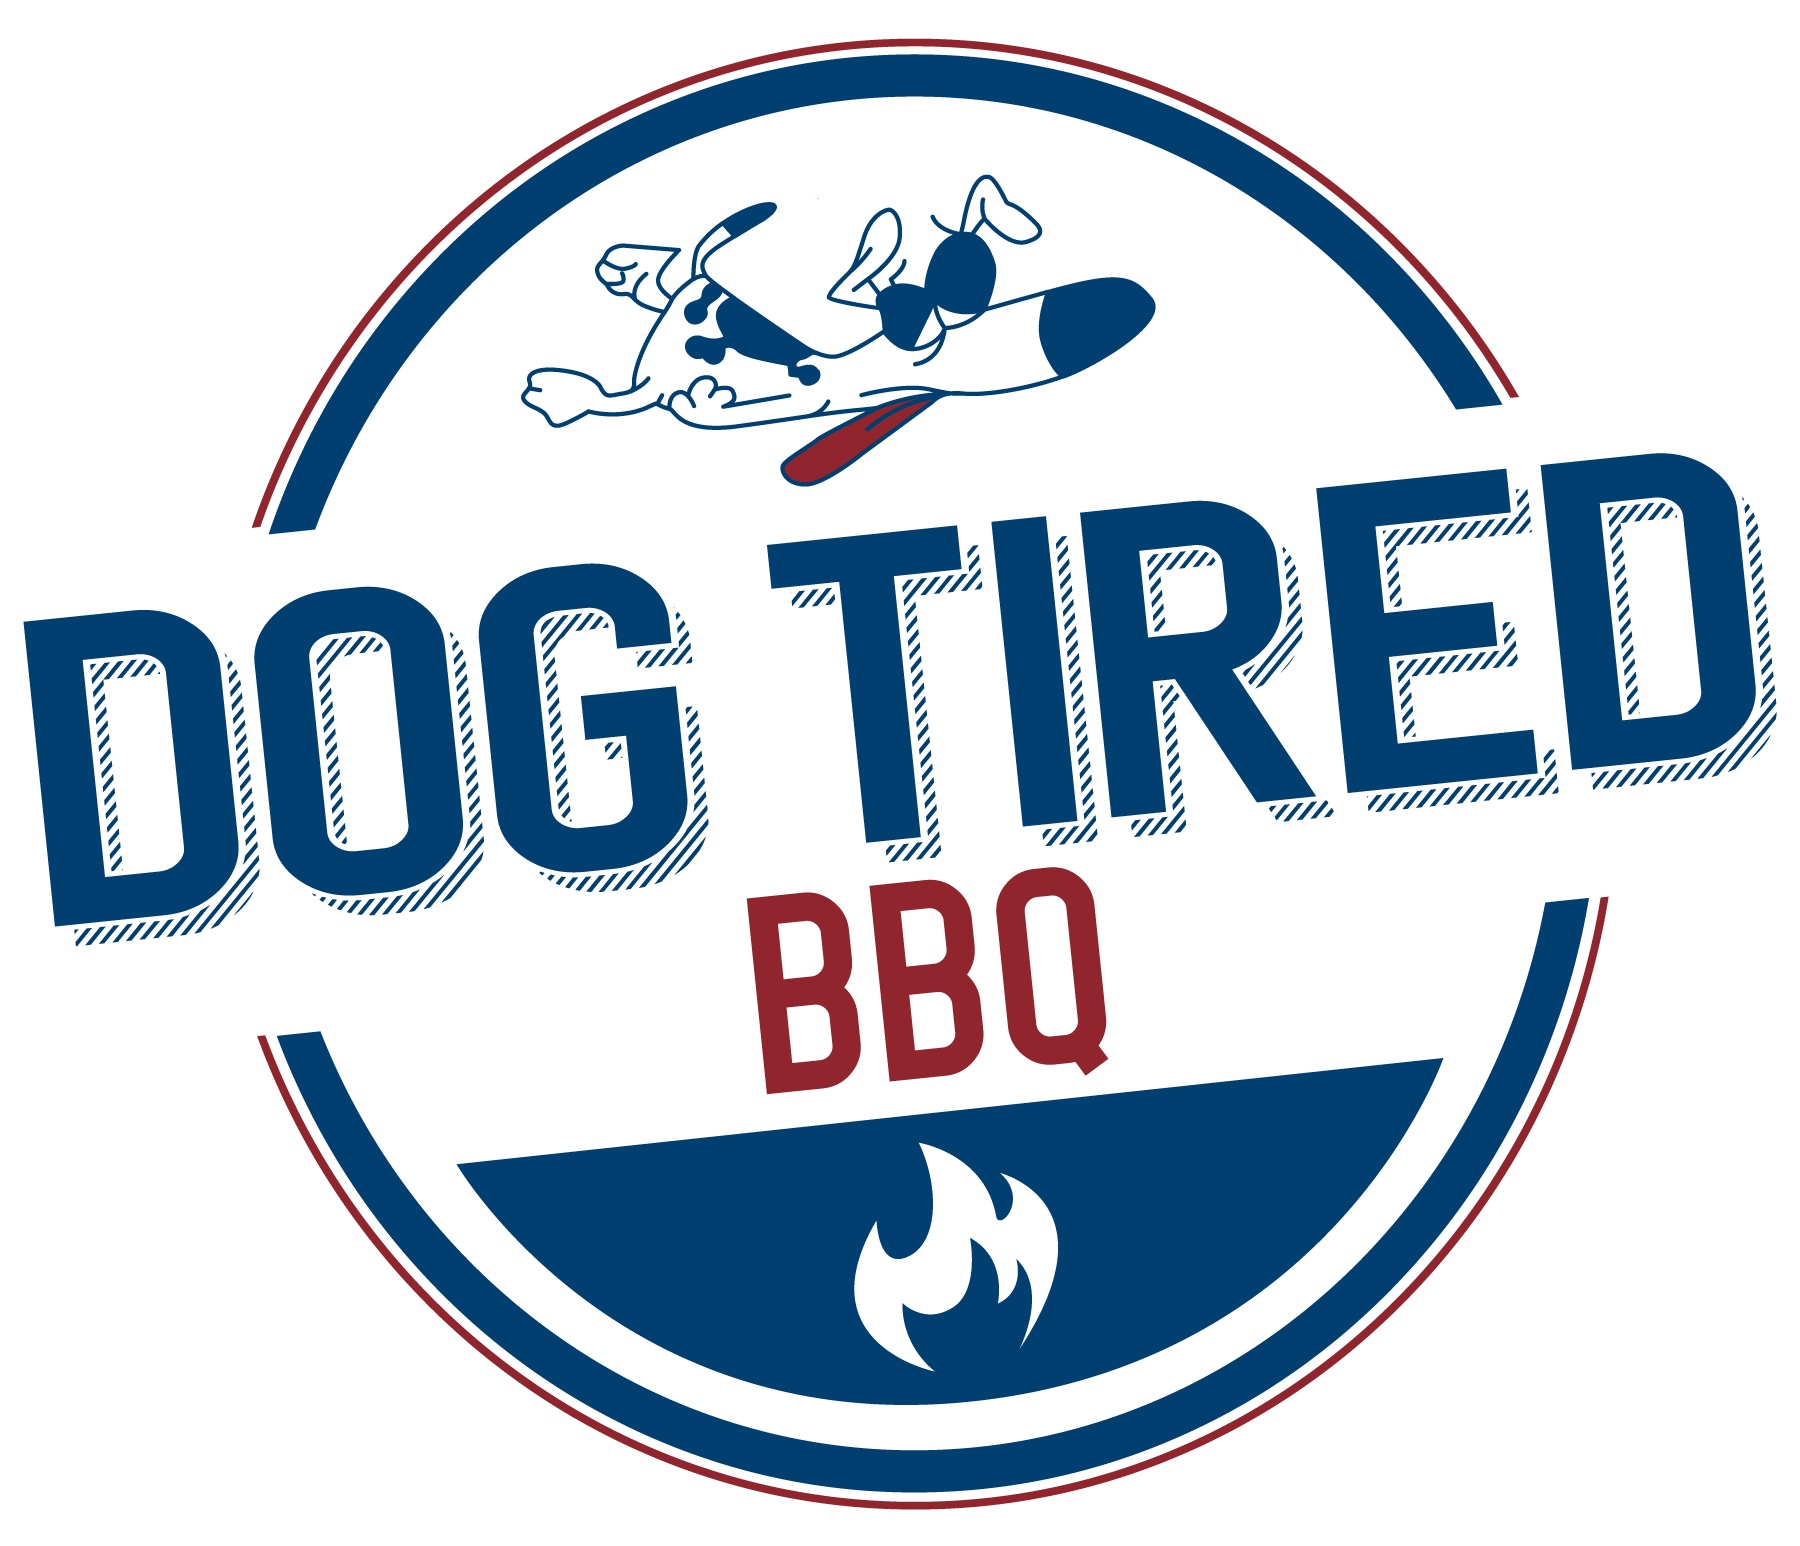 DogTiredBBQ_Final